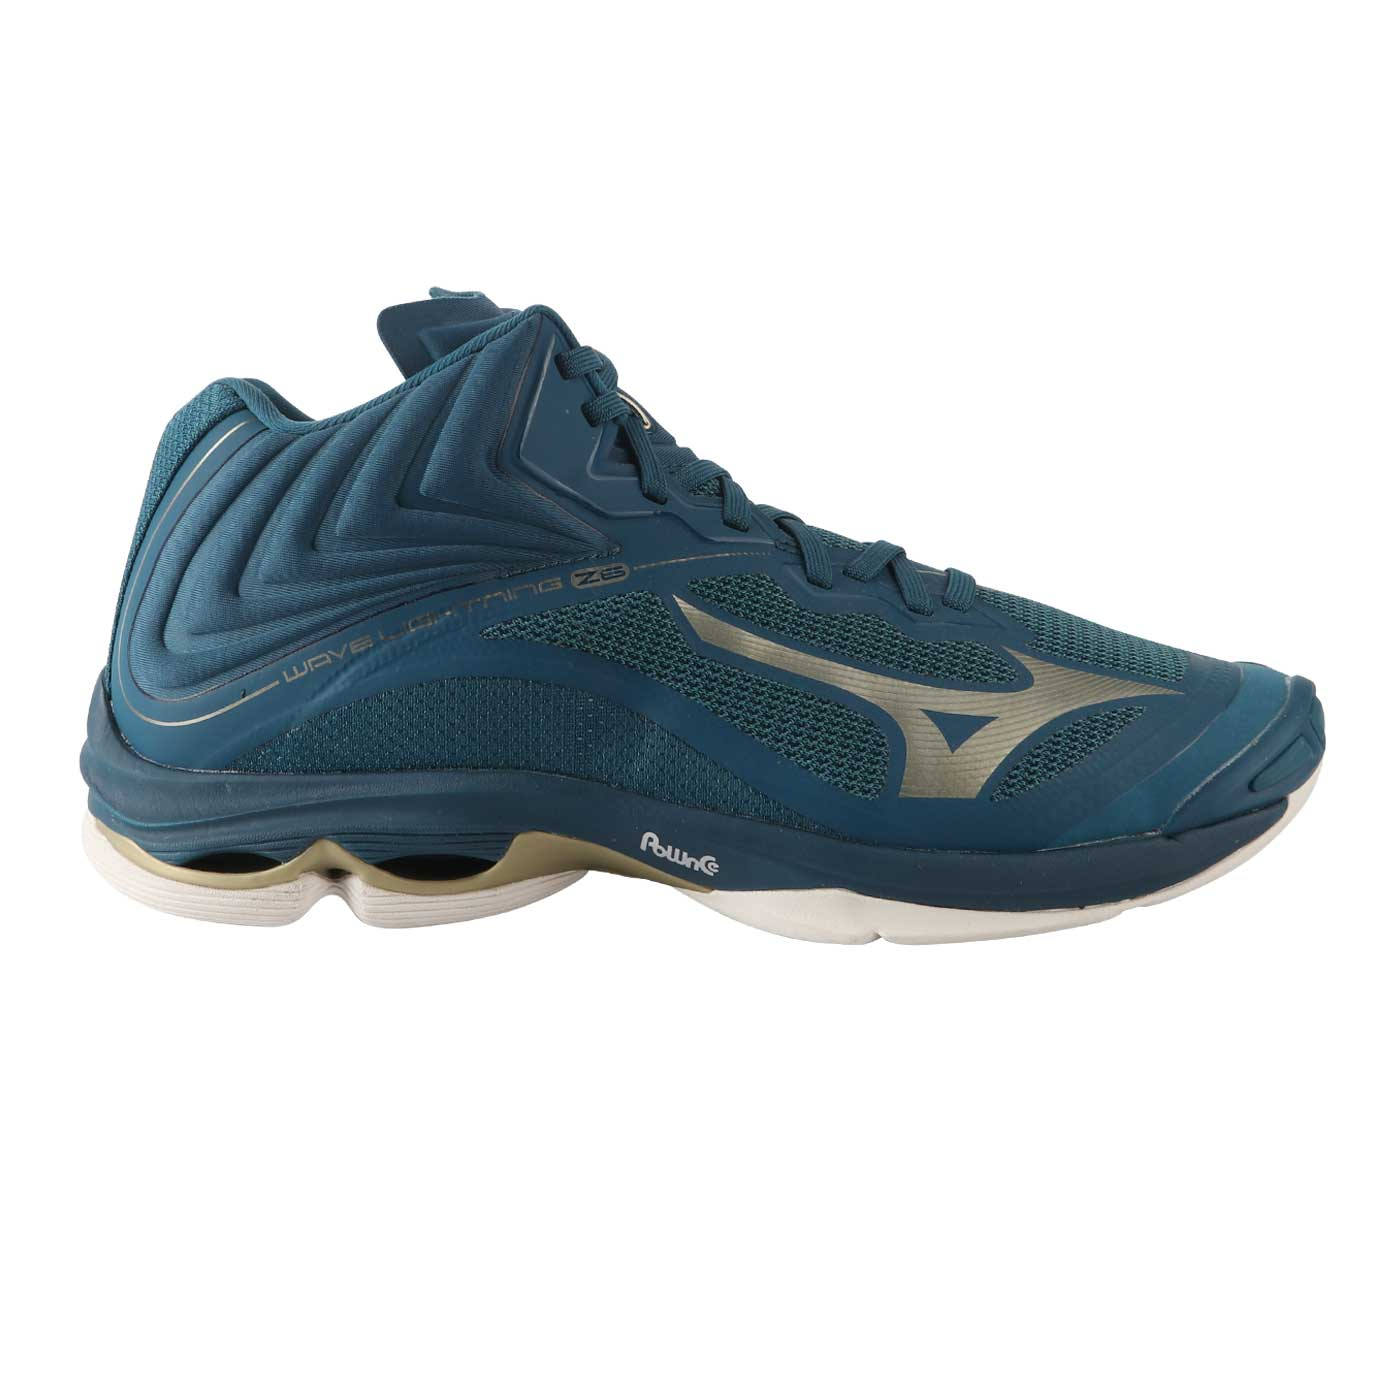 WAVE LIGHTNING Z6 MID-HYDRO/8382 C/LEGION BLUE